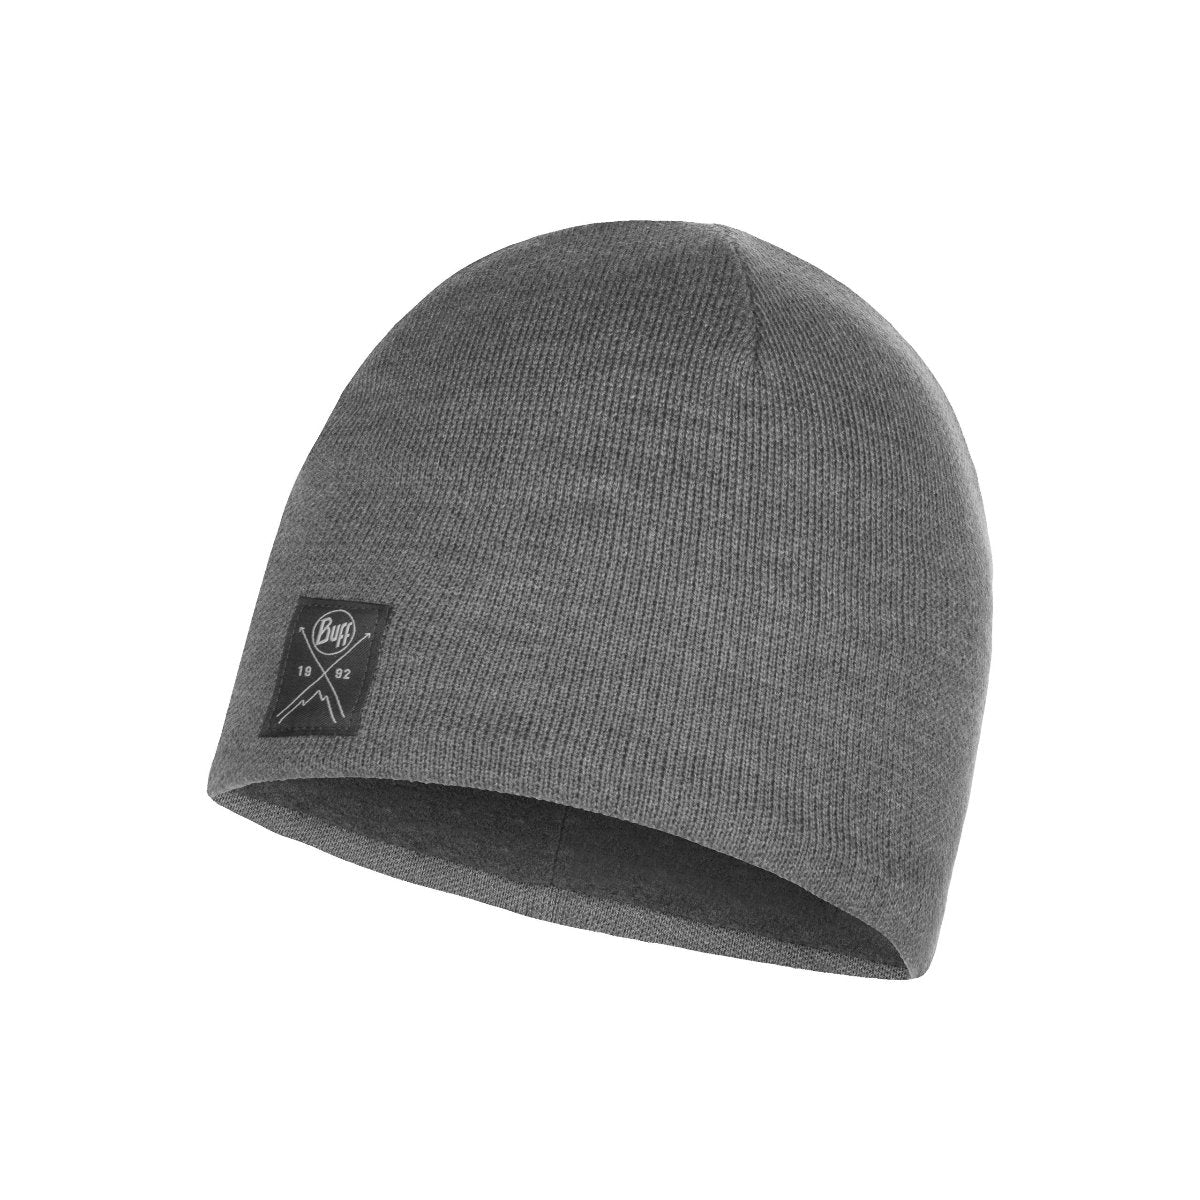 113519.937, Buff, Knitted & Polar Hat Solid Grey, Solid Grey, Beanies for Men | Knitted Beanie